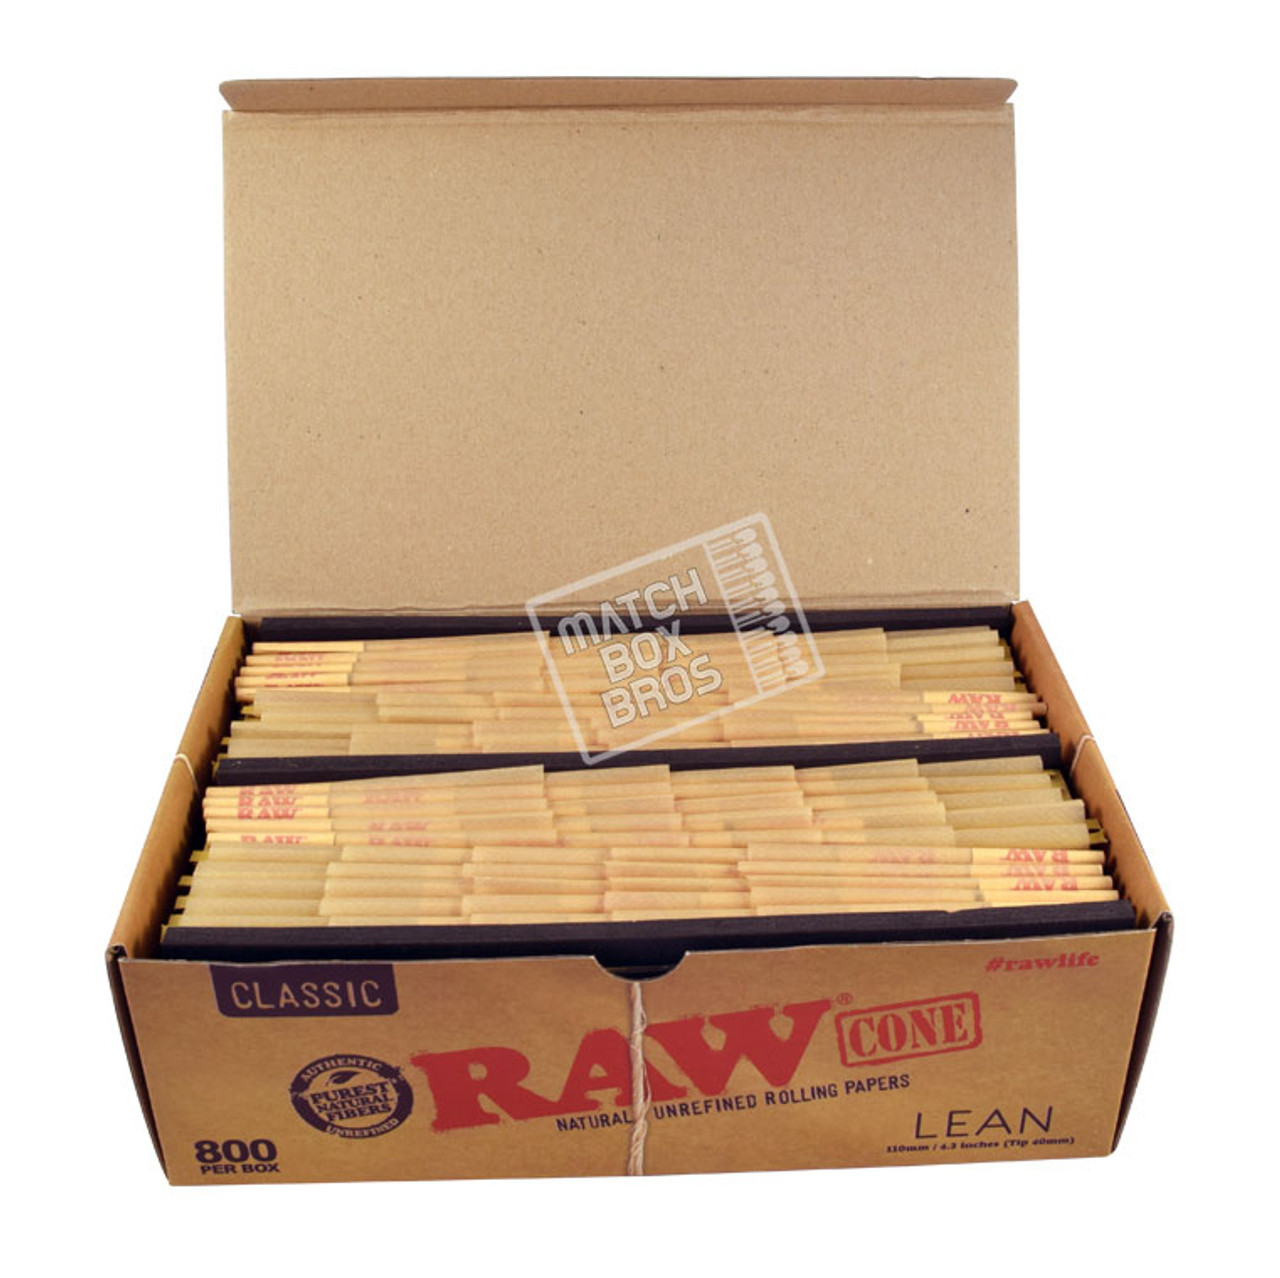 RAW Cone Lean Size Bulk 800ct Box 02